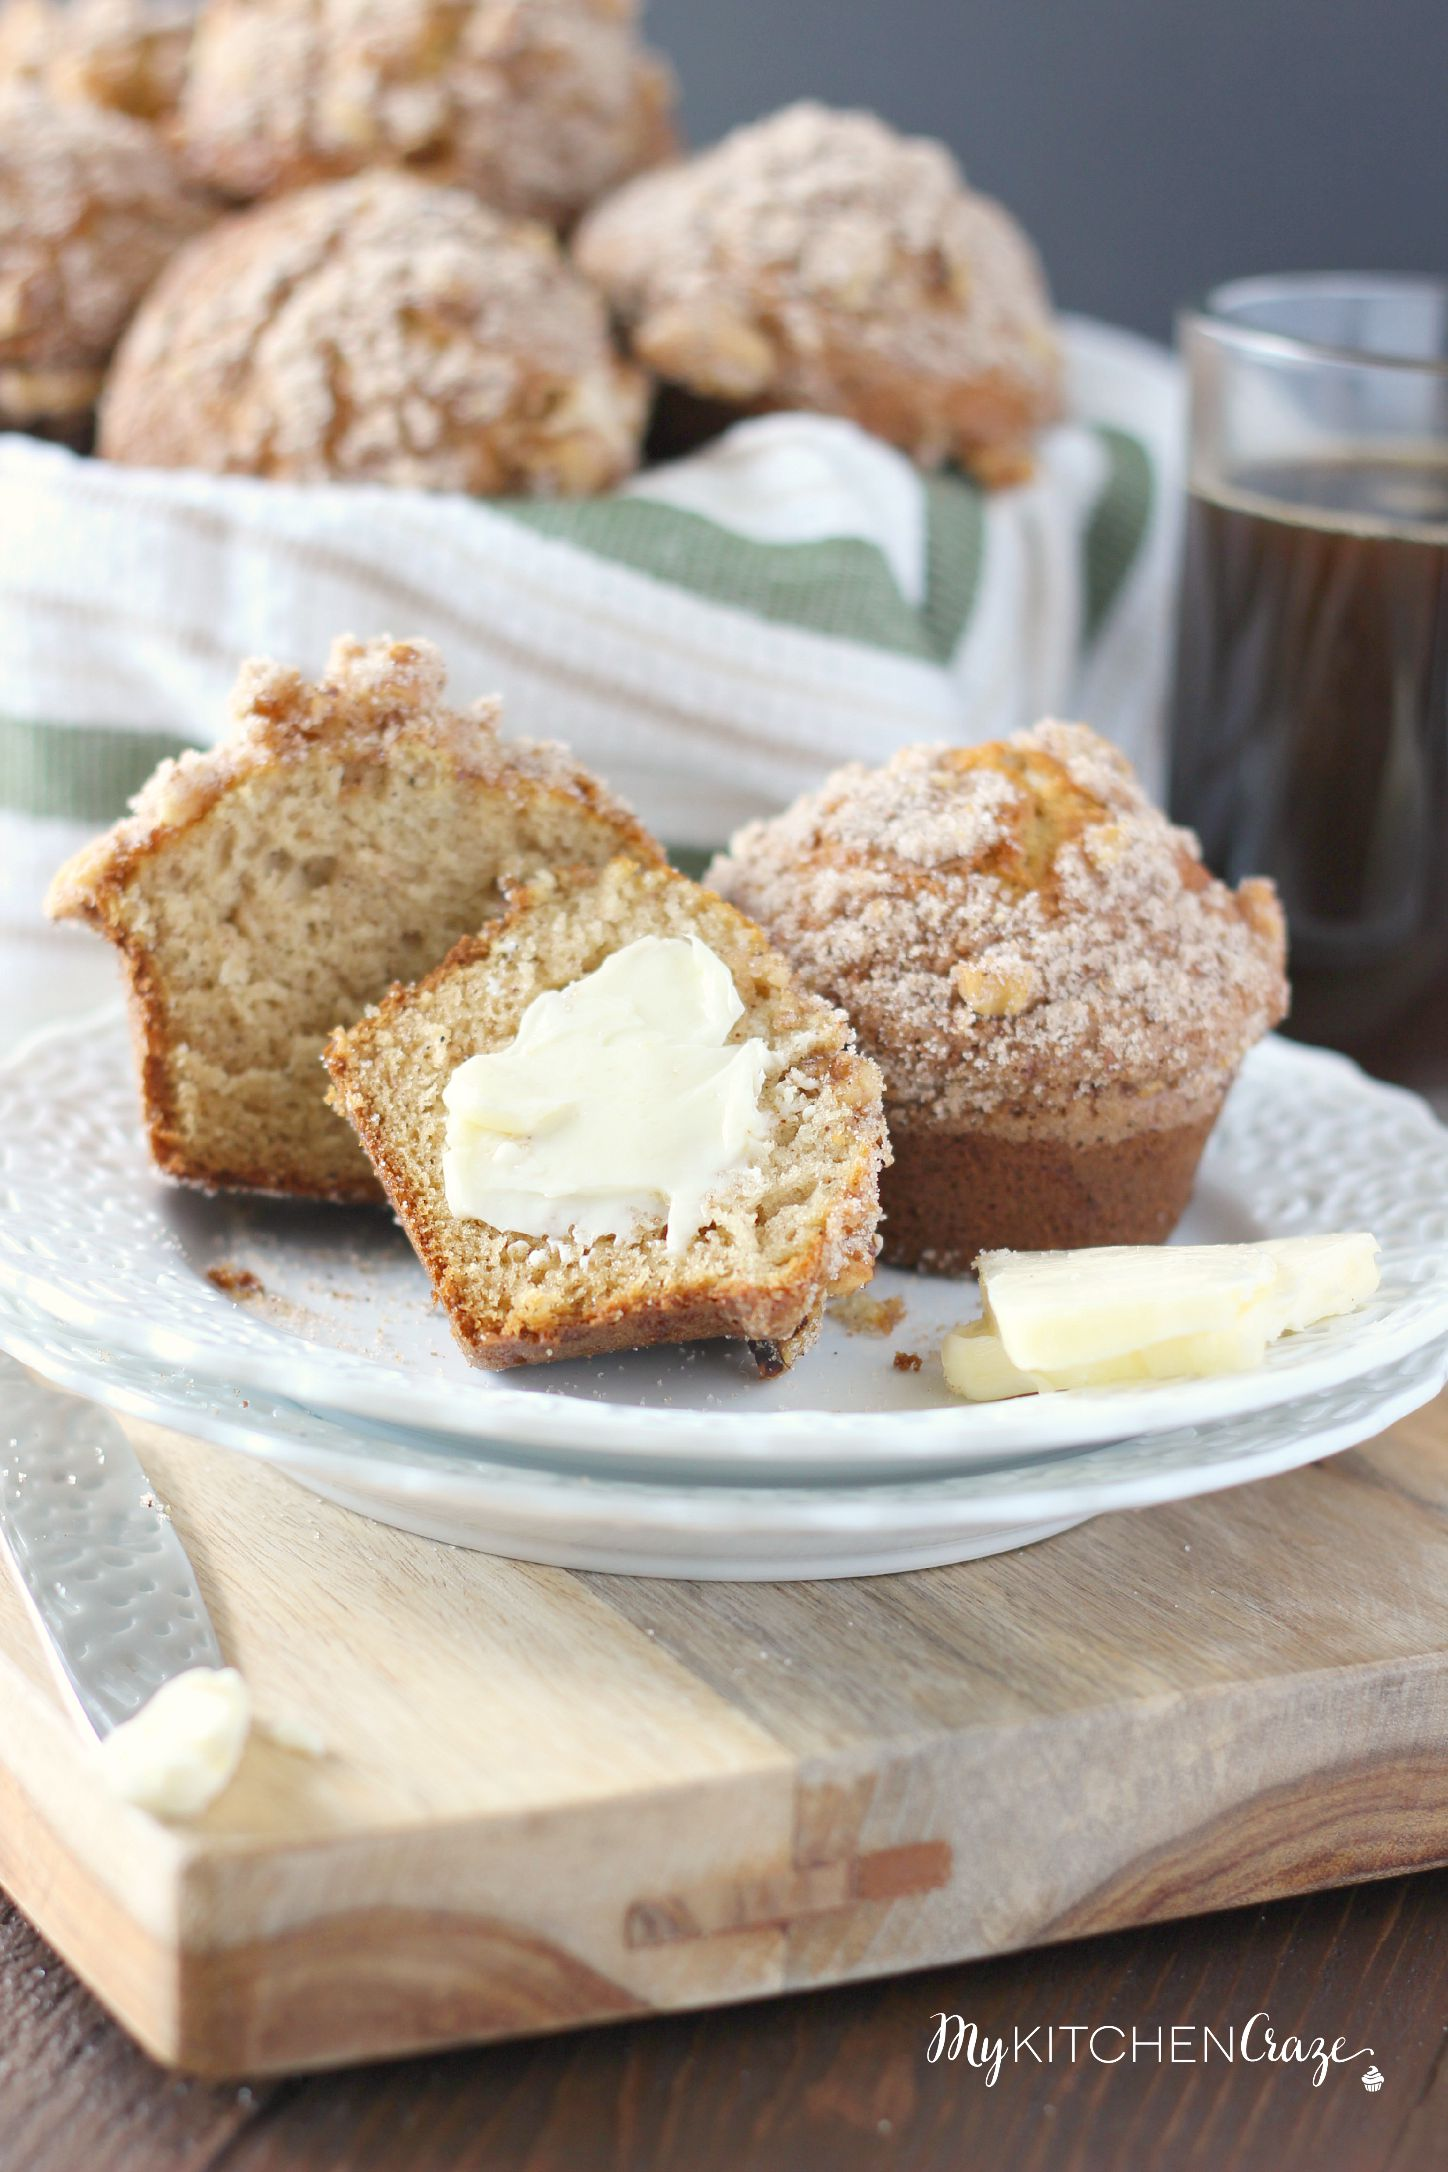 Buttermilk Spice Muffins (Mimi's Cafe Copycat) ~ mykitchencraze.com ~ These muffins are perfect for breakfast! Serve warm and with some butter. You'll be in heaven!